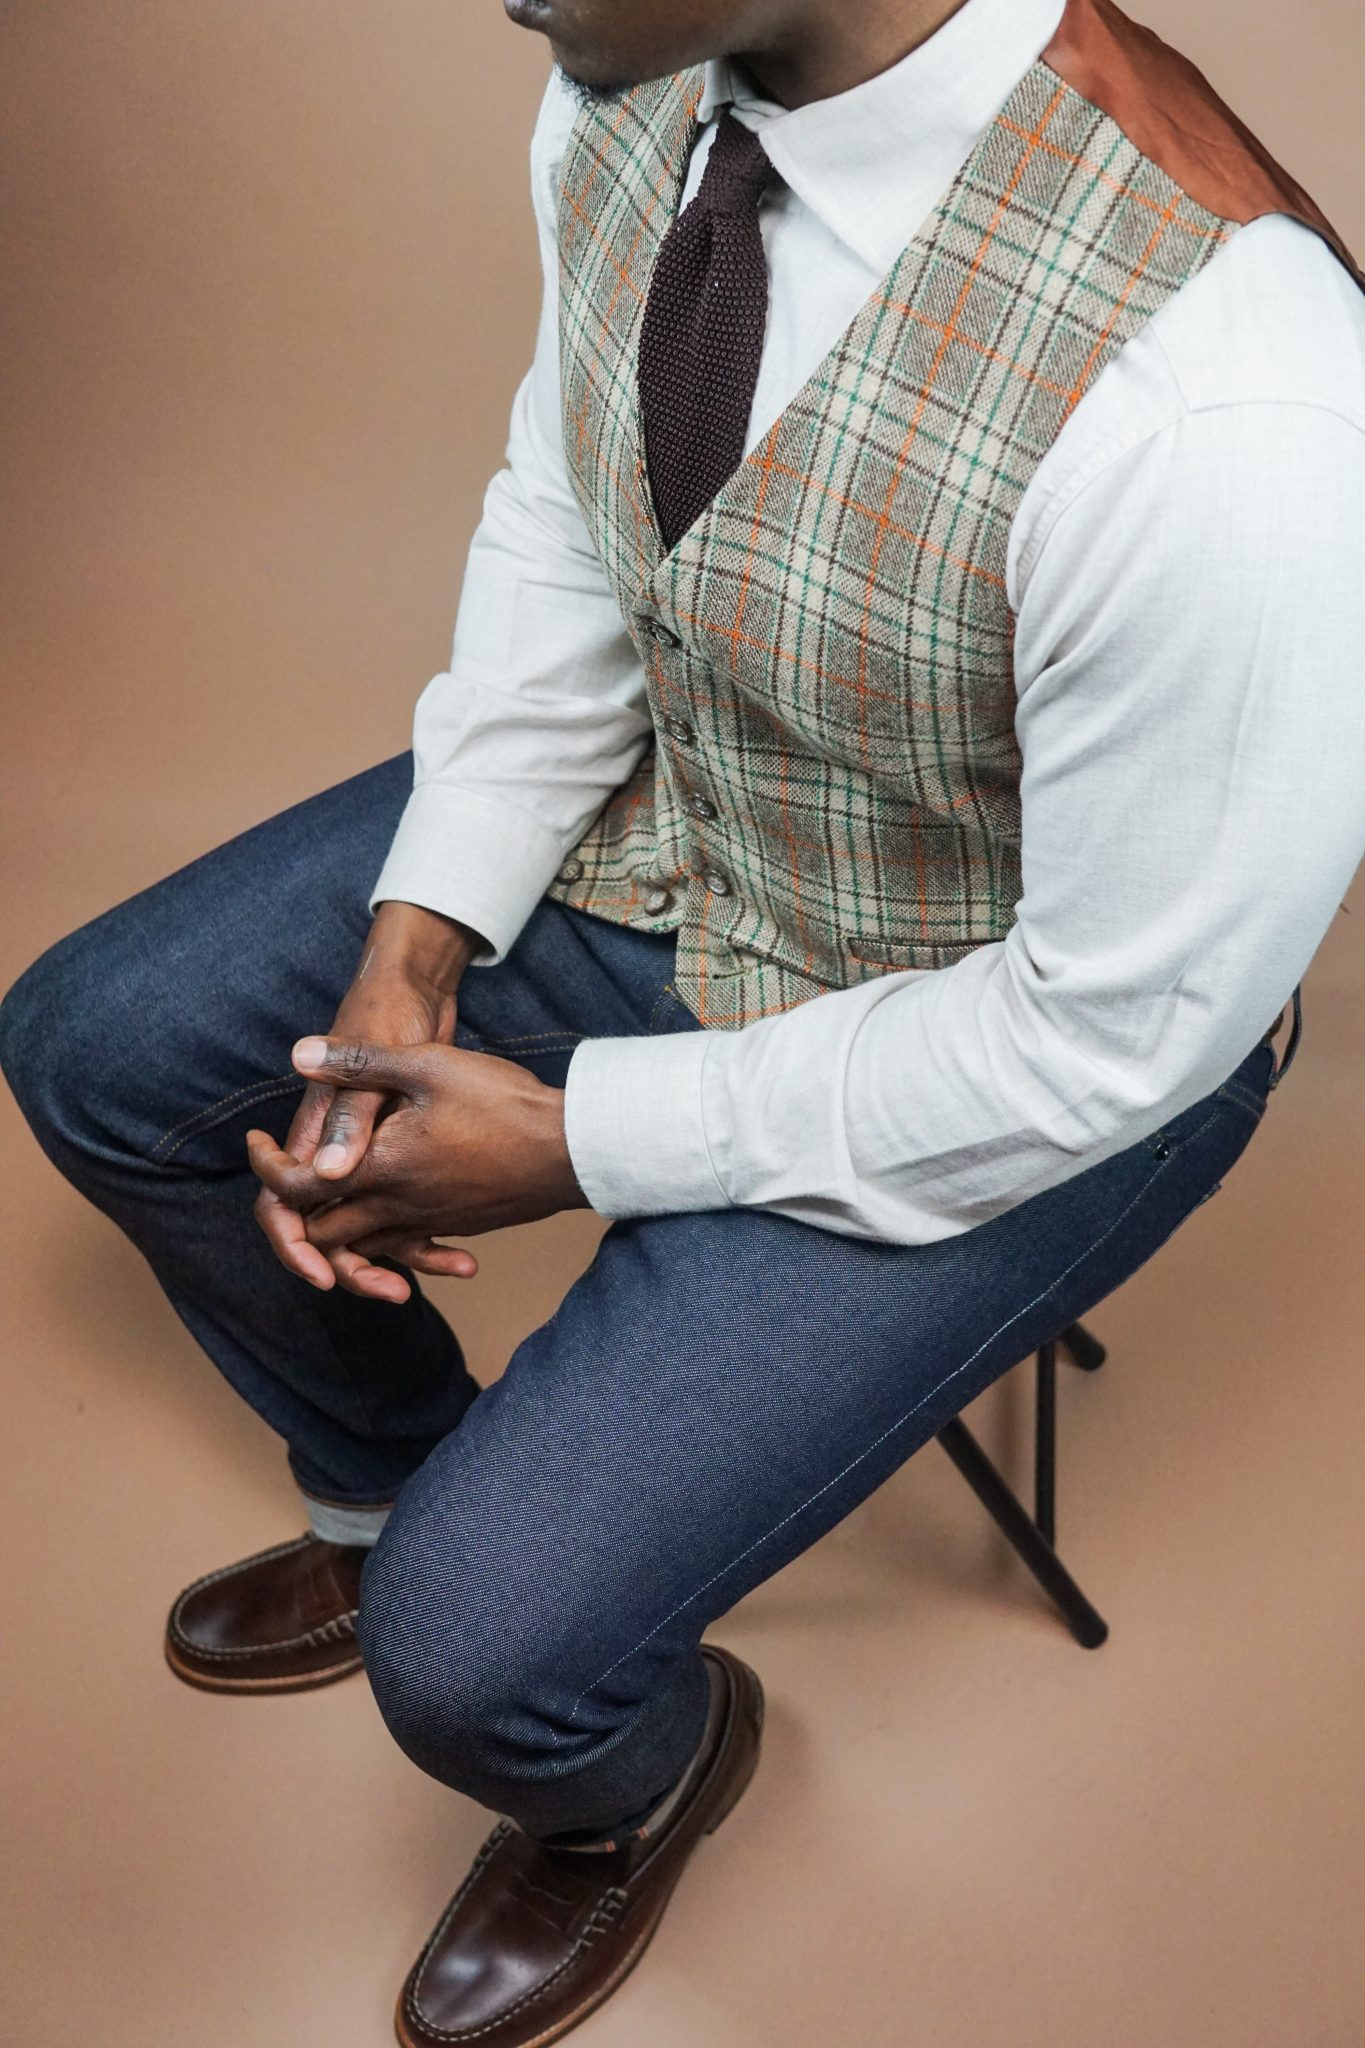 dapper-advisor-casually tailored-plaid-waistcoat-raw-denim-jeans-silk-knit-tie-leather-penny-loafers-1